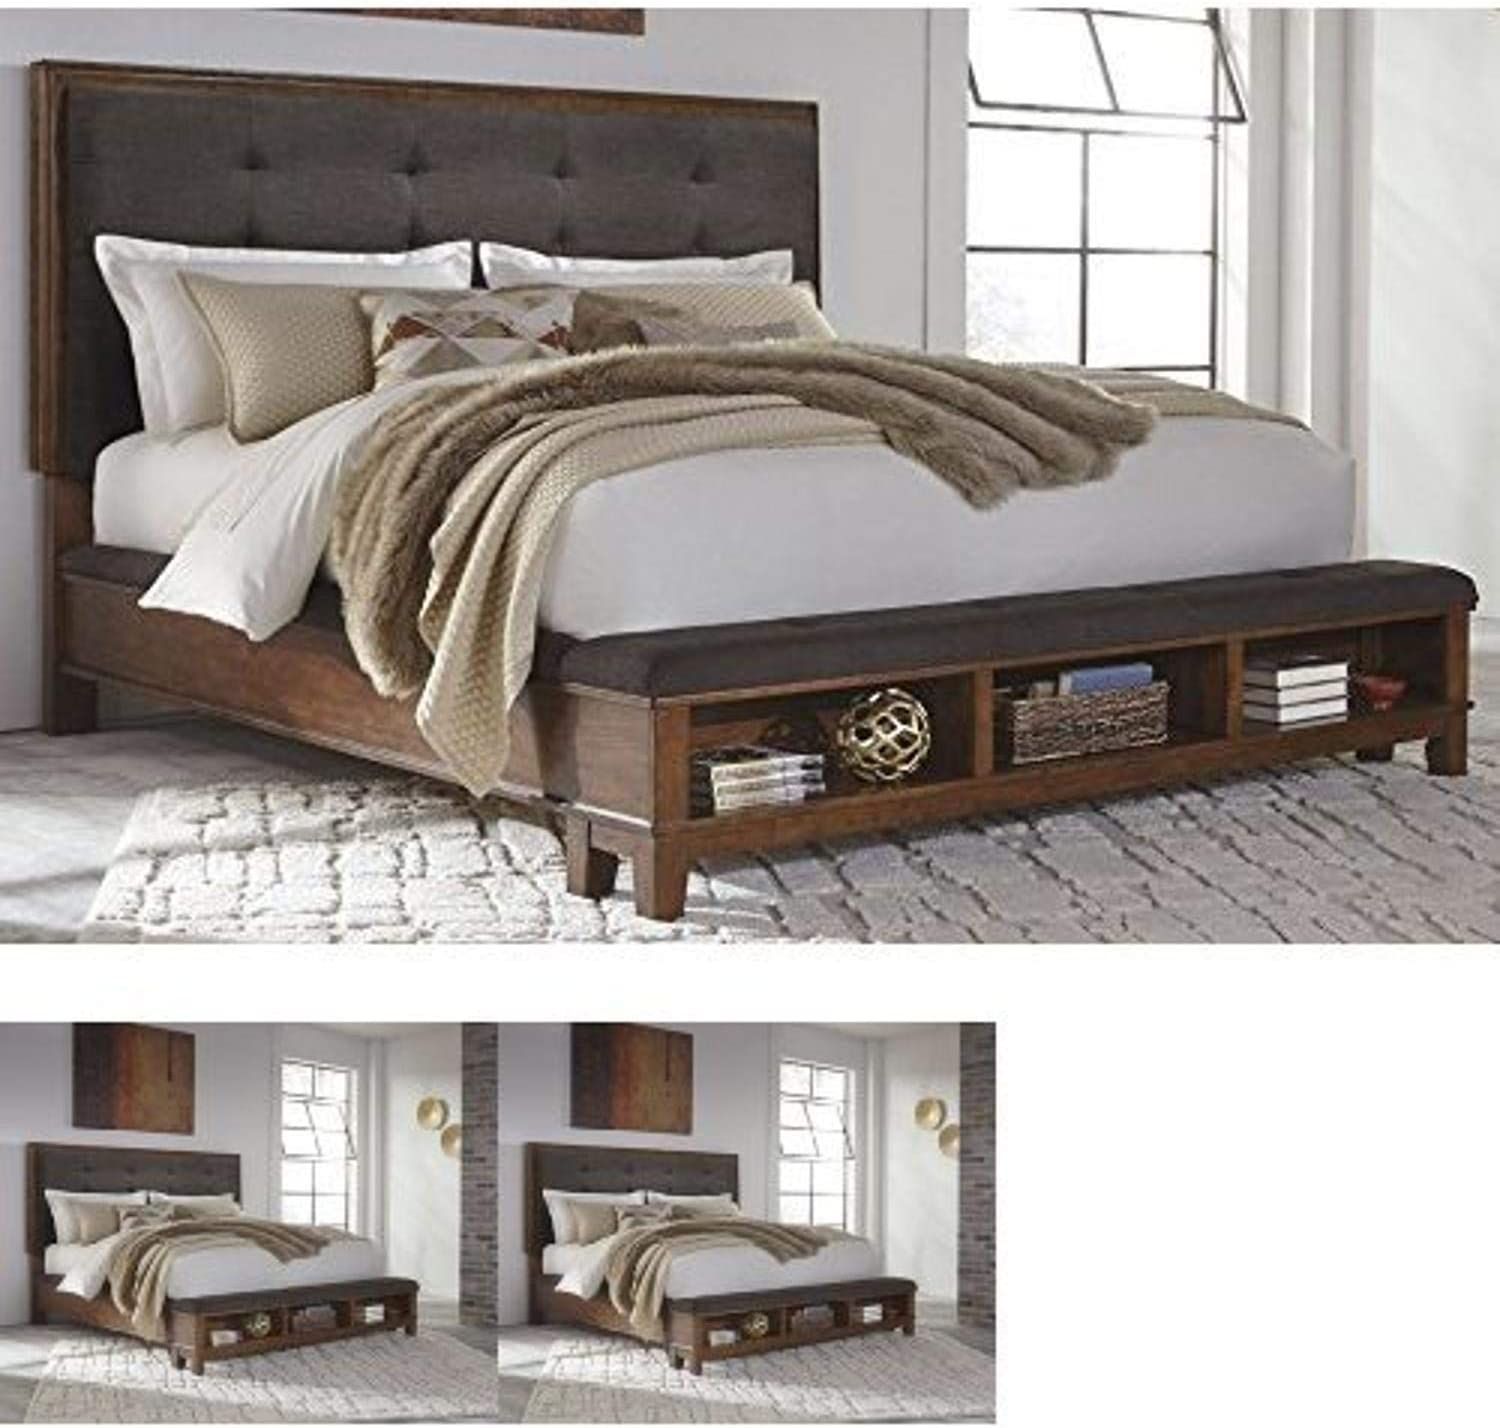 Ashley Furniture Signature Design - Ralene Master Bedroom Upholstered Panel Bedset with Storage - King Size - Medium Brown